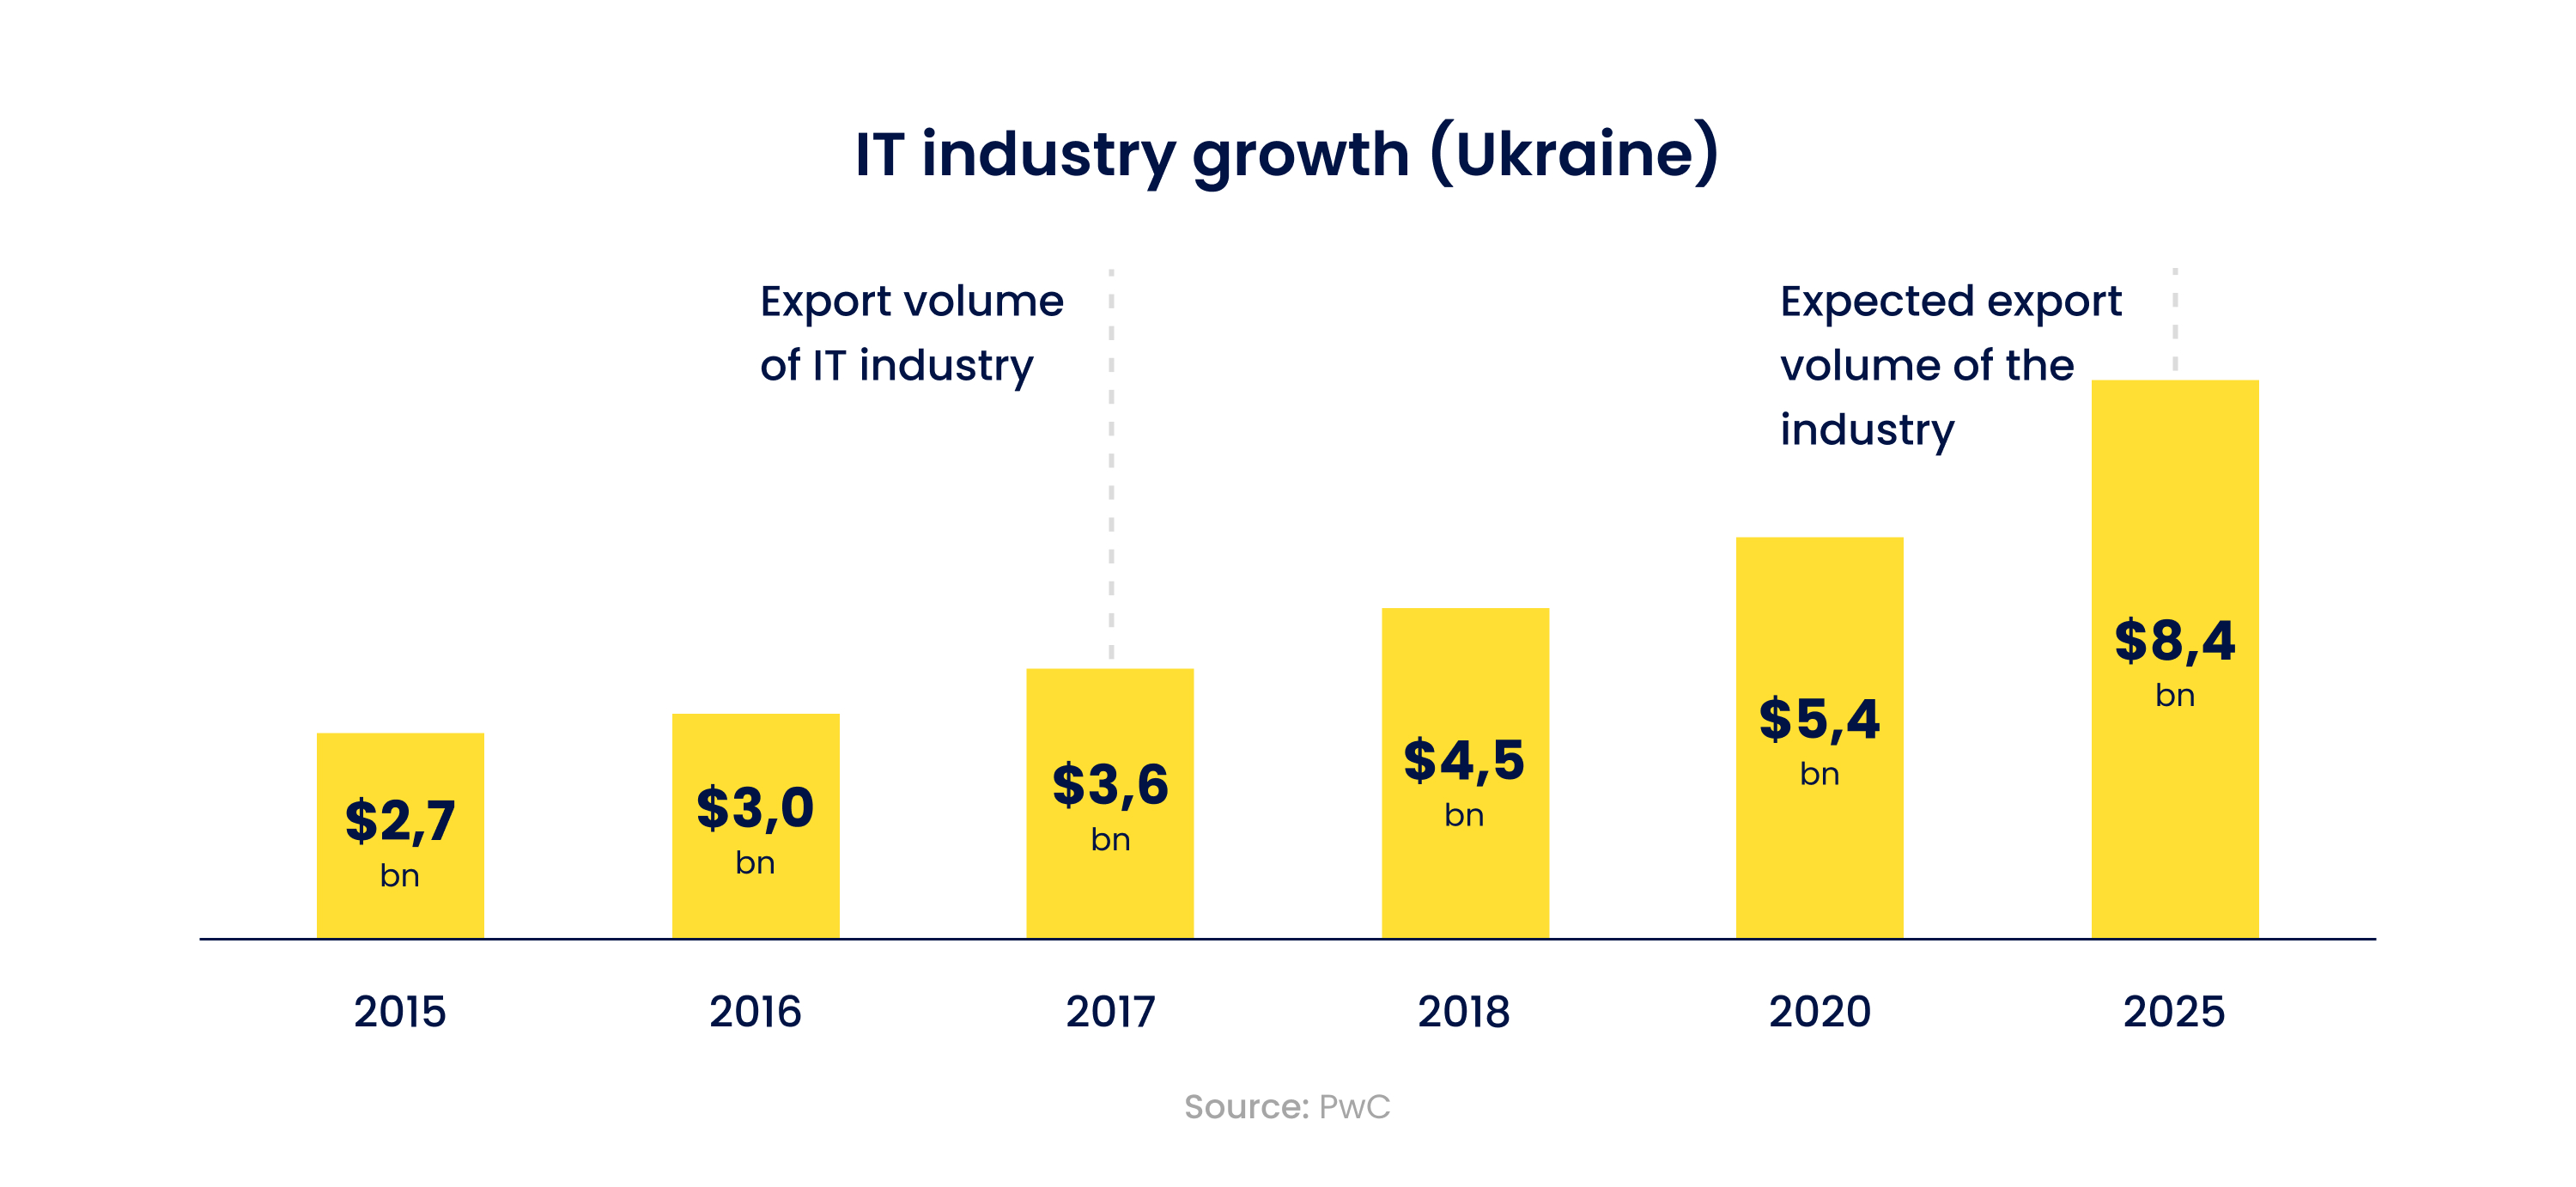 IT industry growth in Ukraine